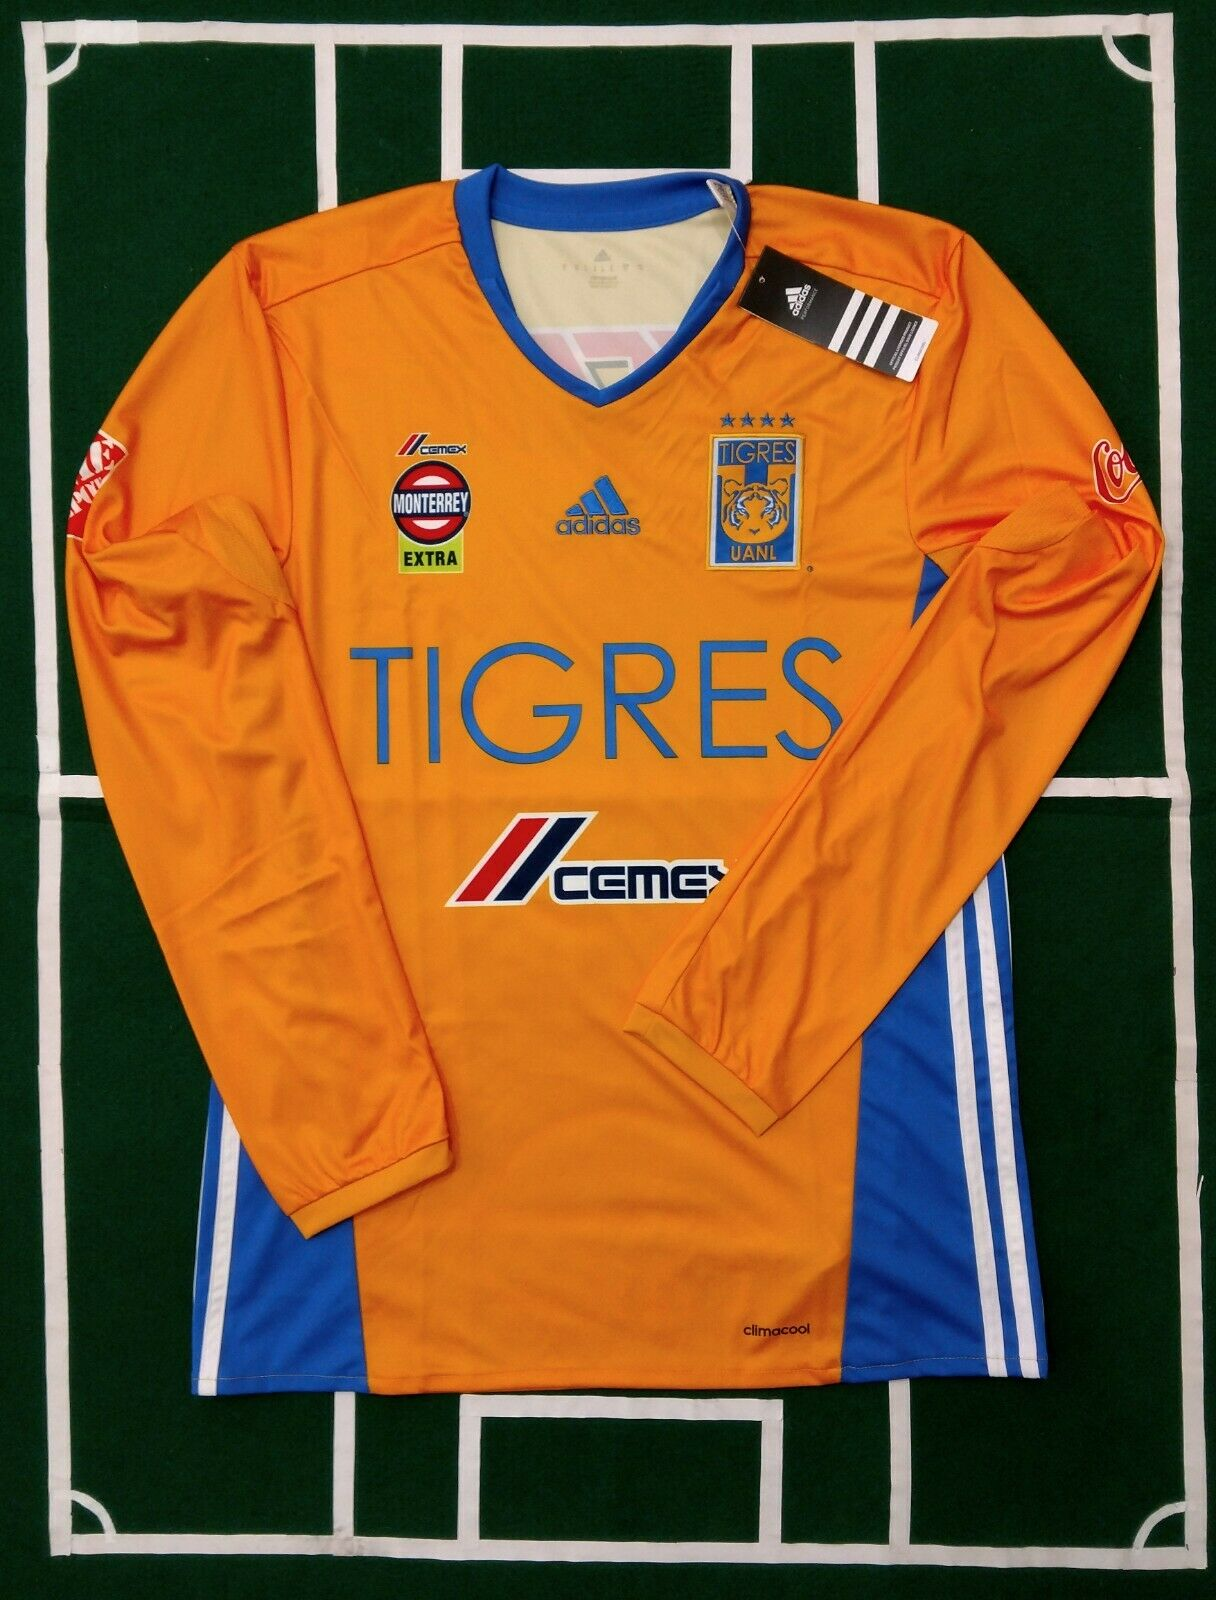 ADIDAS TIGRES UANL JERSEY LOCALHOME 20162017 giallo LONG SLEEVES  NWT